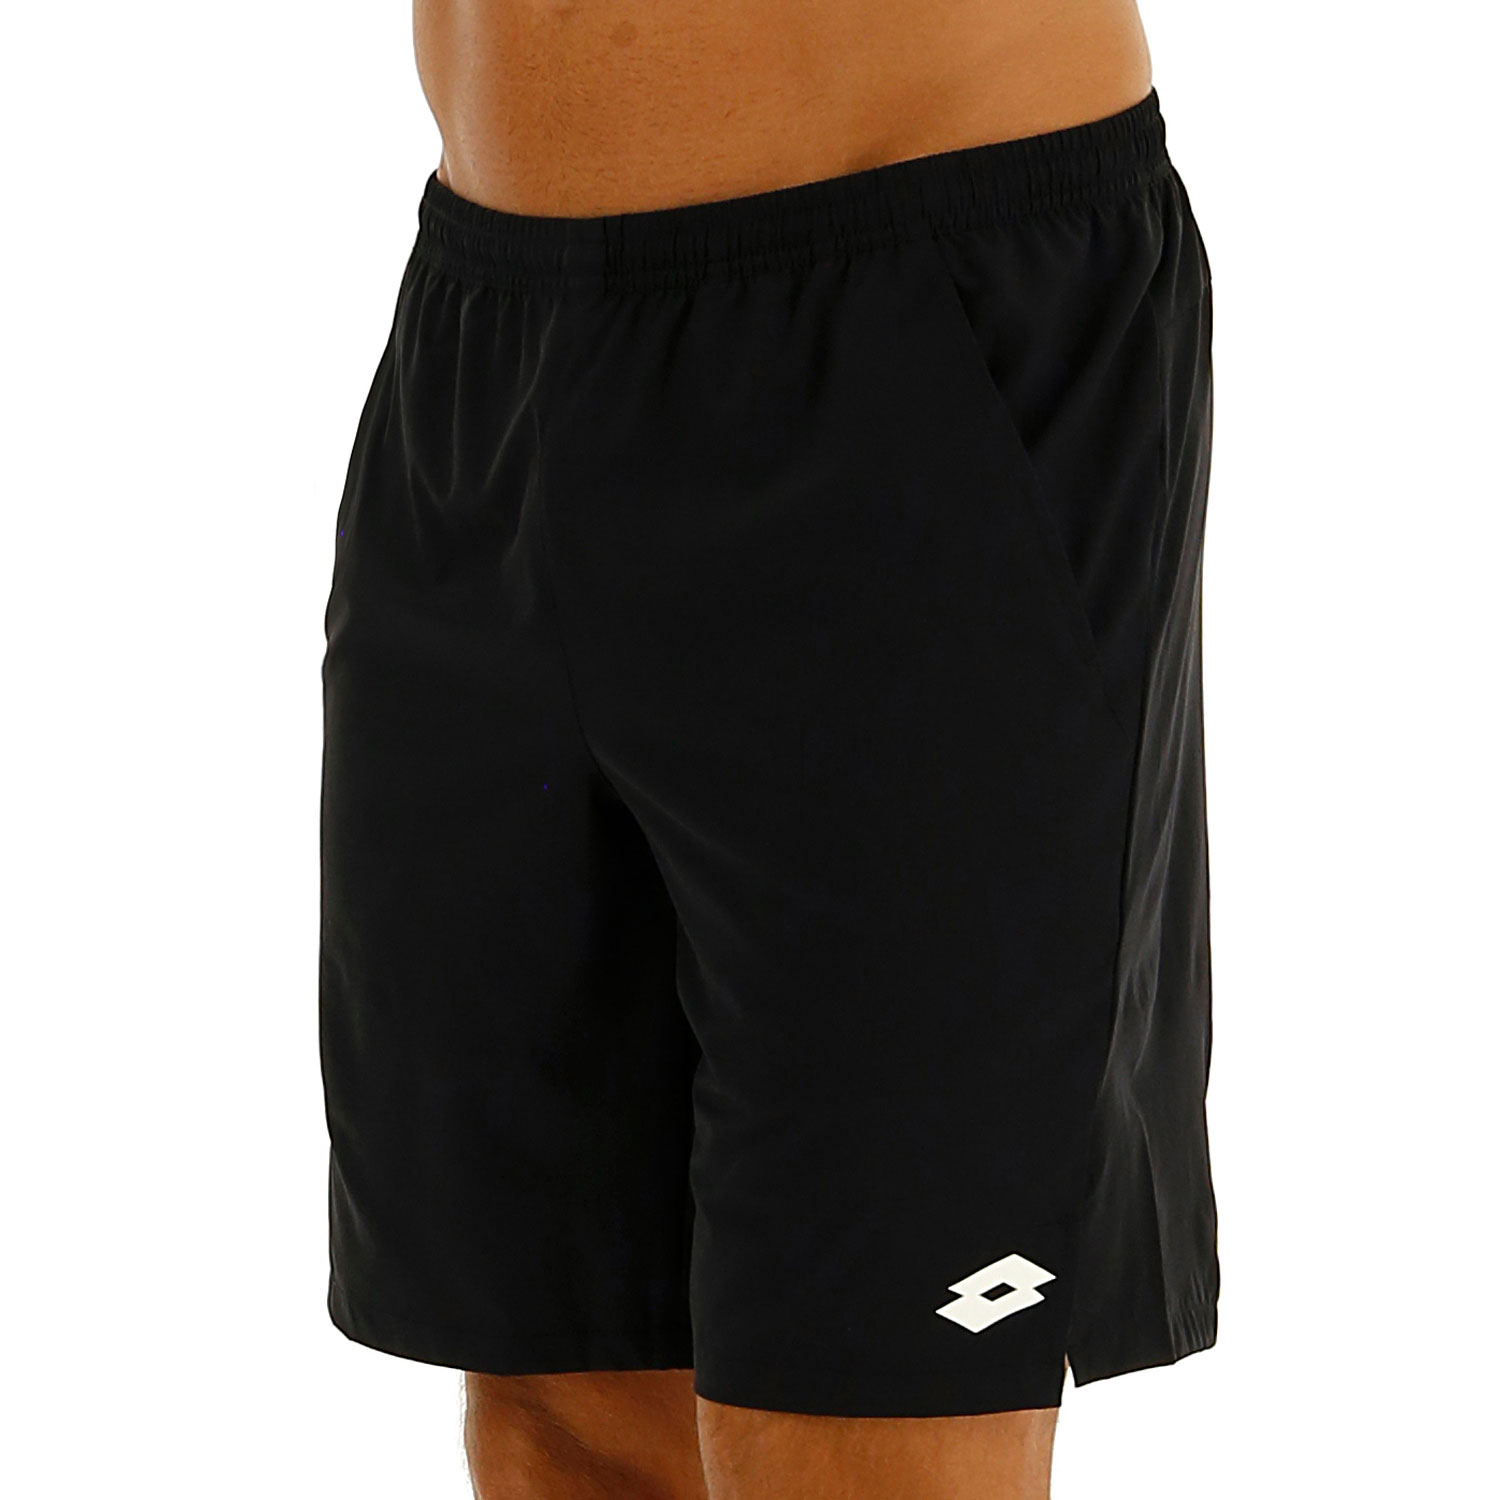 Lotto Top Ten II 9in Shorts - All Black